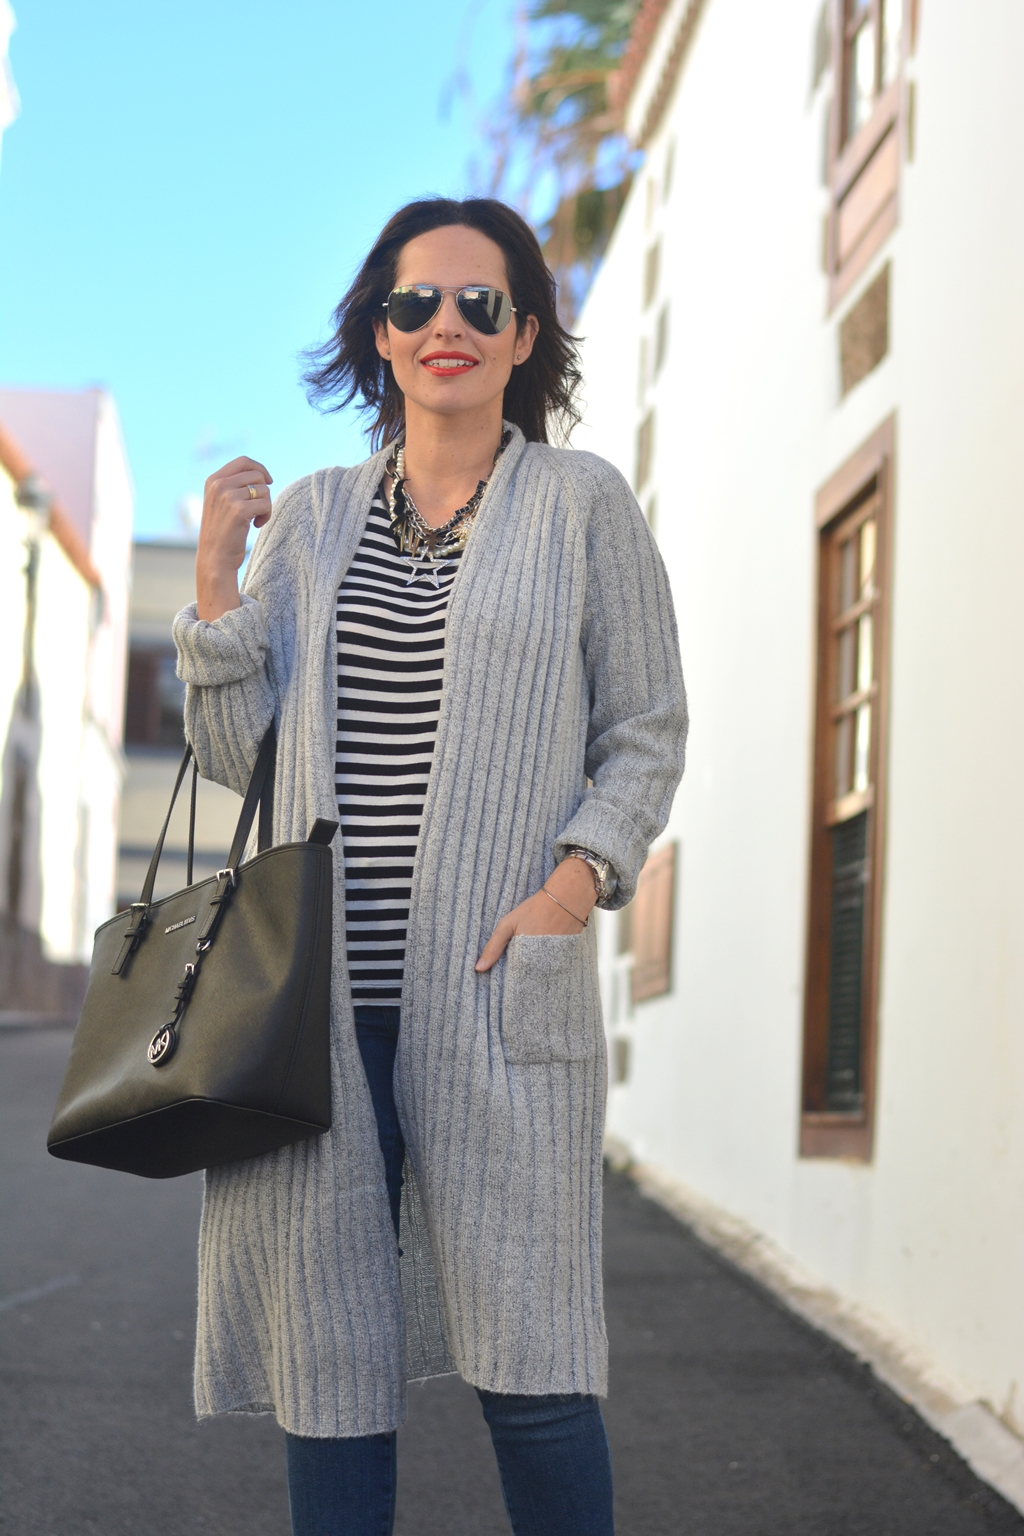 long-cardigan-outfit-streetstyle